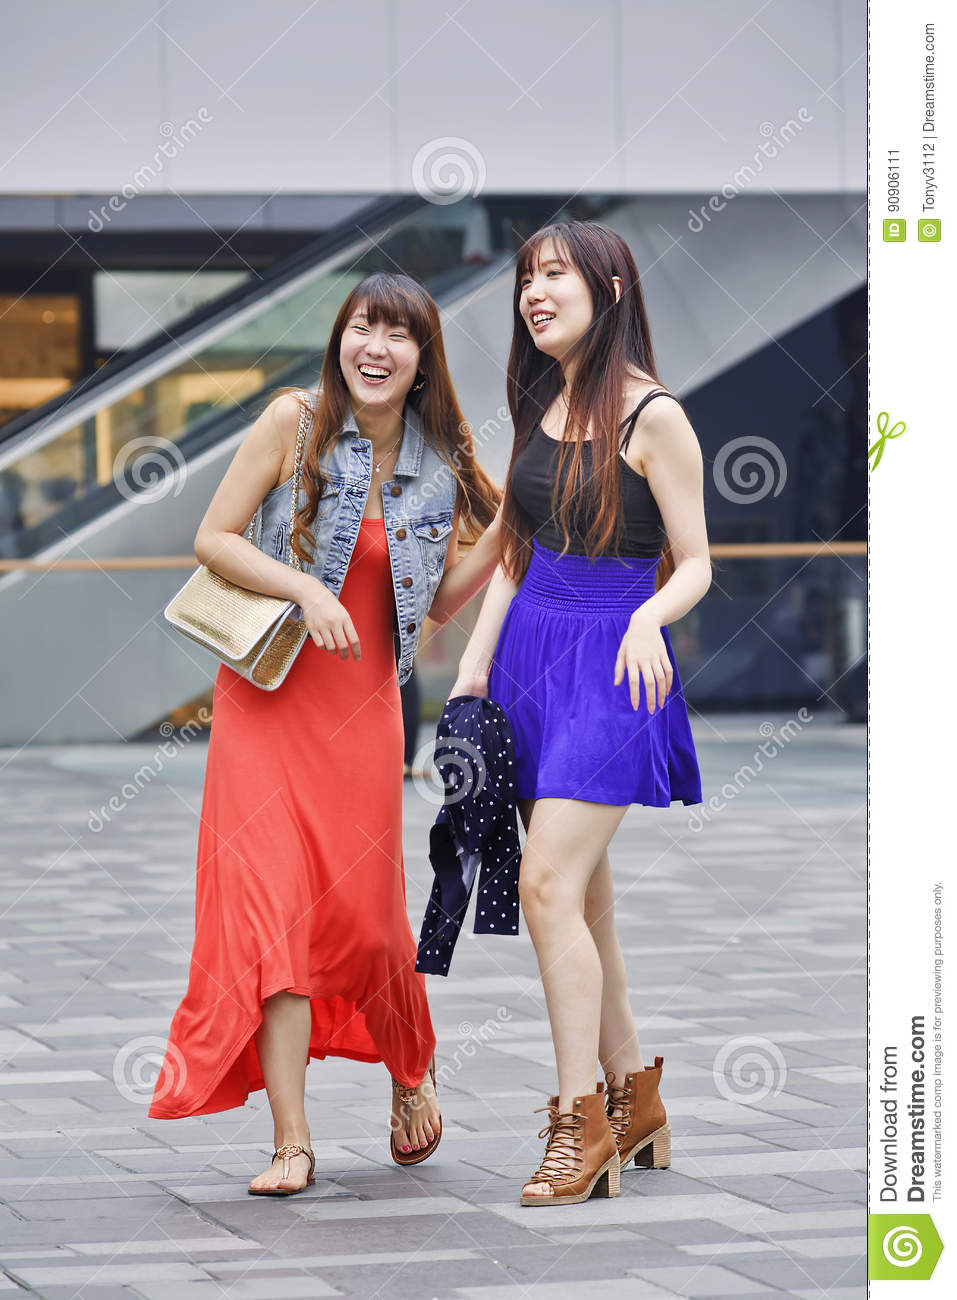 Cheerful young girls in a shopping area, Shanghai, China